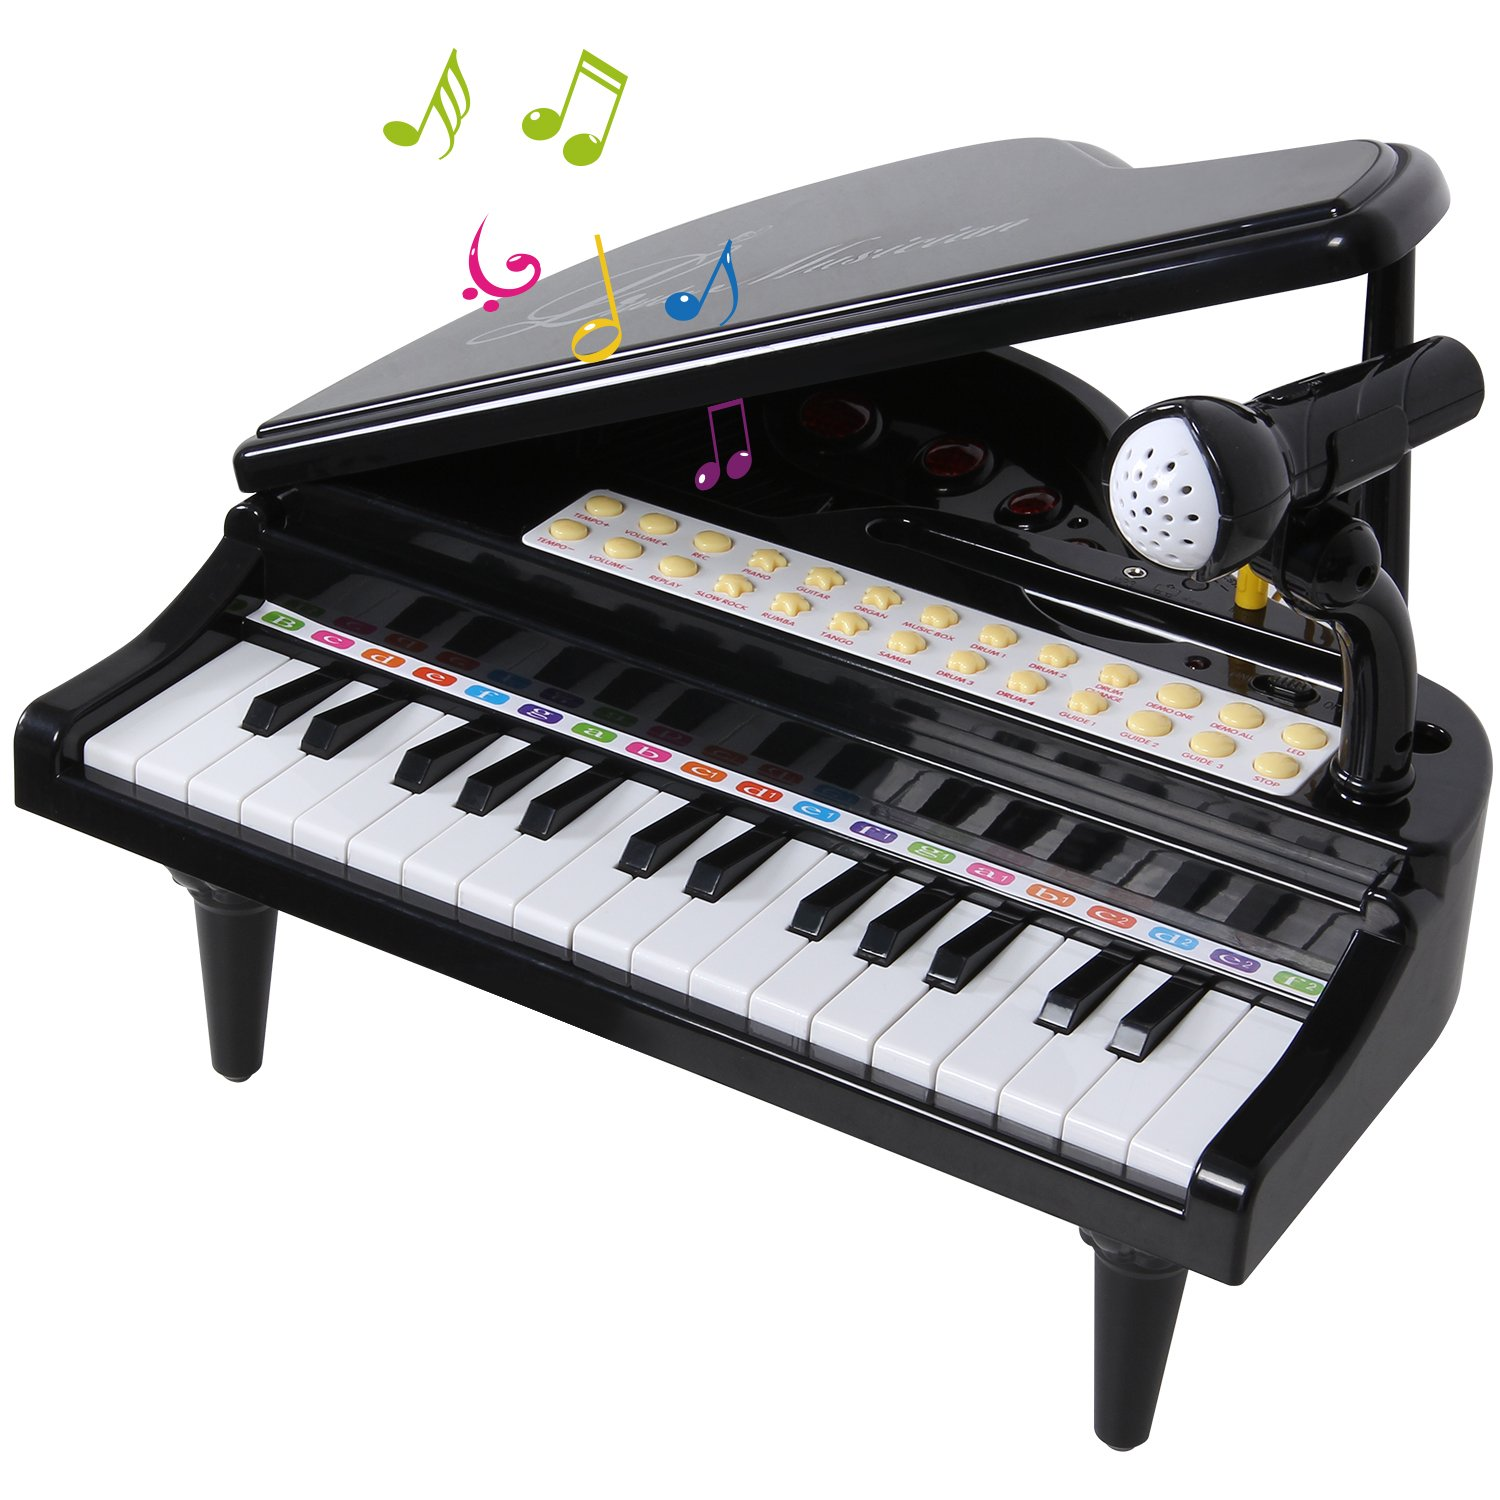 SGILE 31 Keys Musical Piano Toy with Microphone, Learn-to-Play for Girl Toddlers Kids Singing Music development, Audio link with Mobile MP3 IPad PC,Black